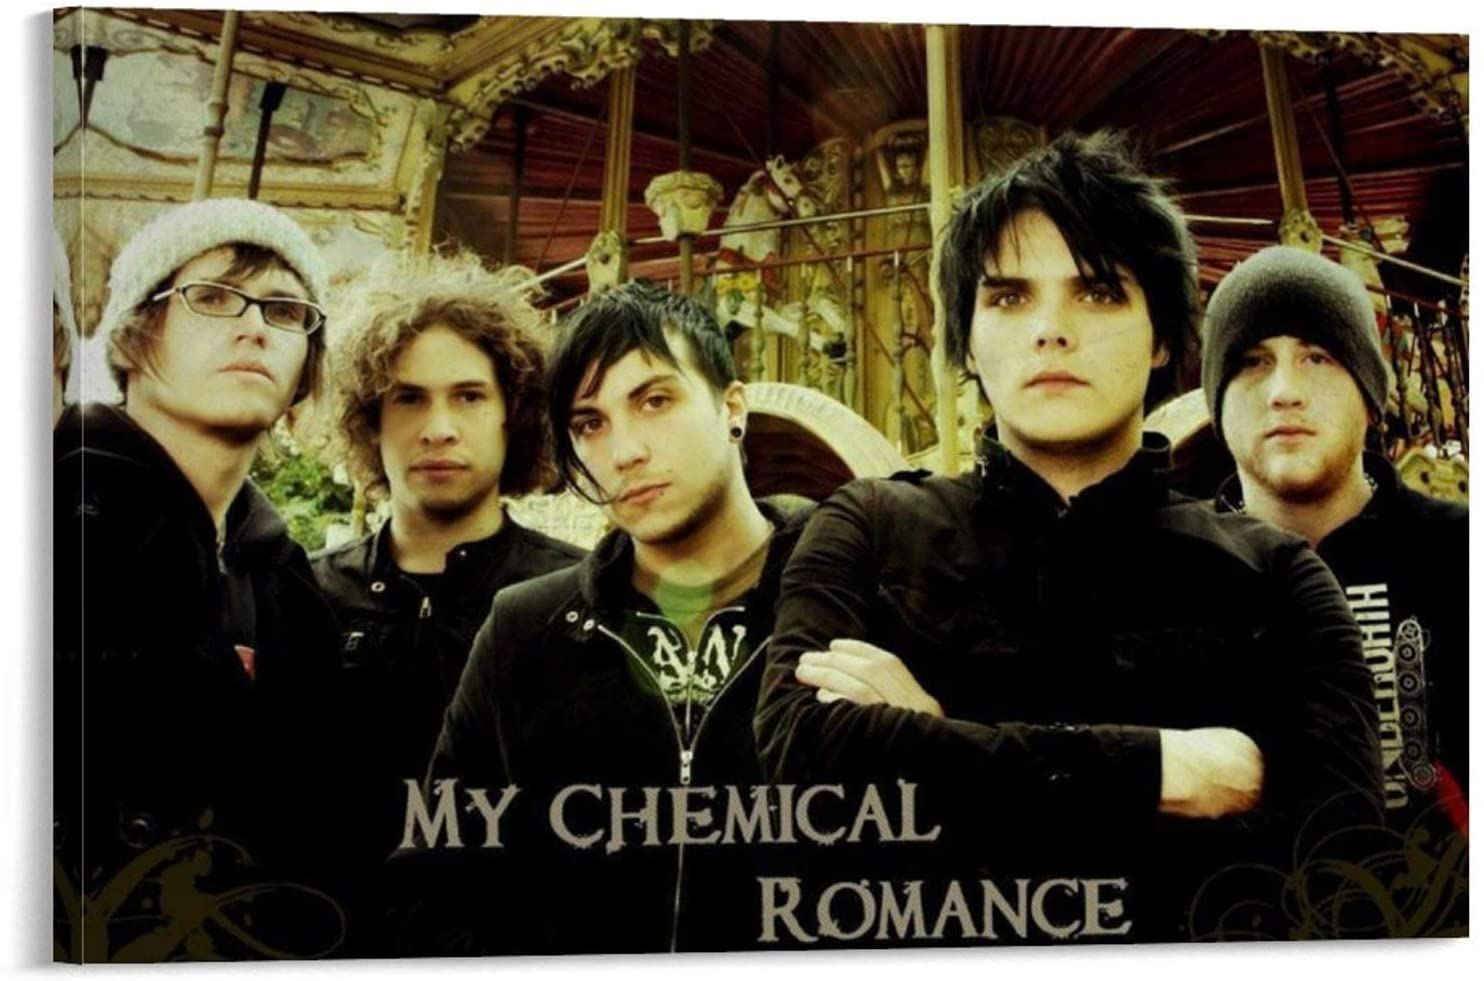 SDGW My Chemical Romance 4 Wall Poster Classic Rock Music Legend Celebrity Poster Wall Art Wall Print Wall Decor Home Decor Canvas Wall Art 24x36inch(60x90cm)